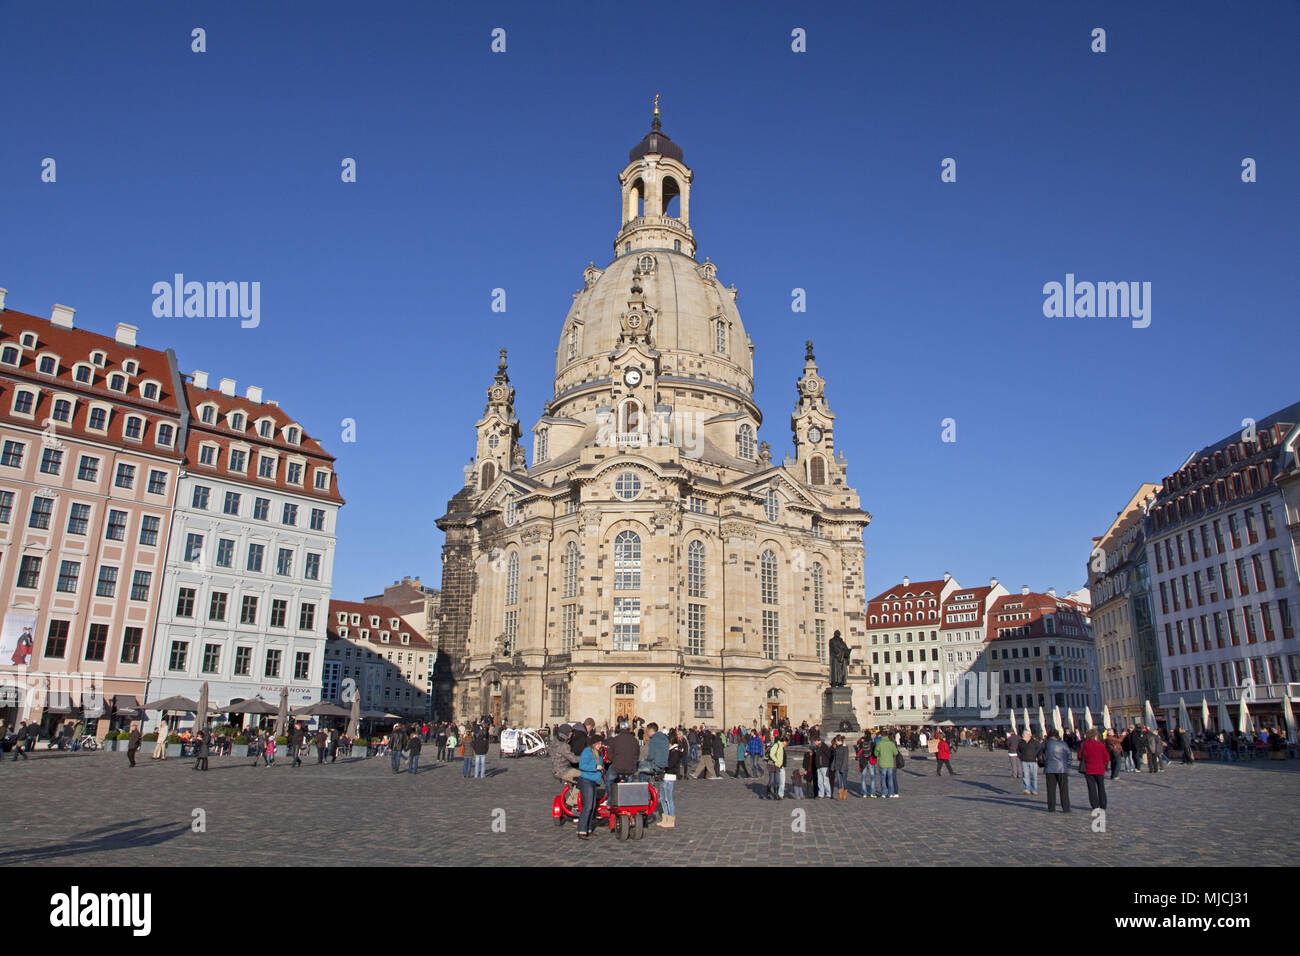 die kirche unserer lieben frau in der altstadt von dresden sachsen deutschland stockfoto bild. Black Bedroom Furniture Sets. Home Design Ideas